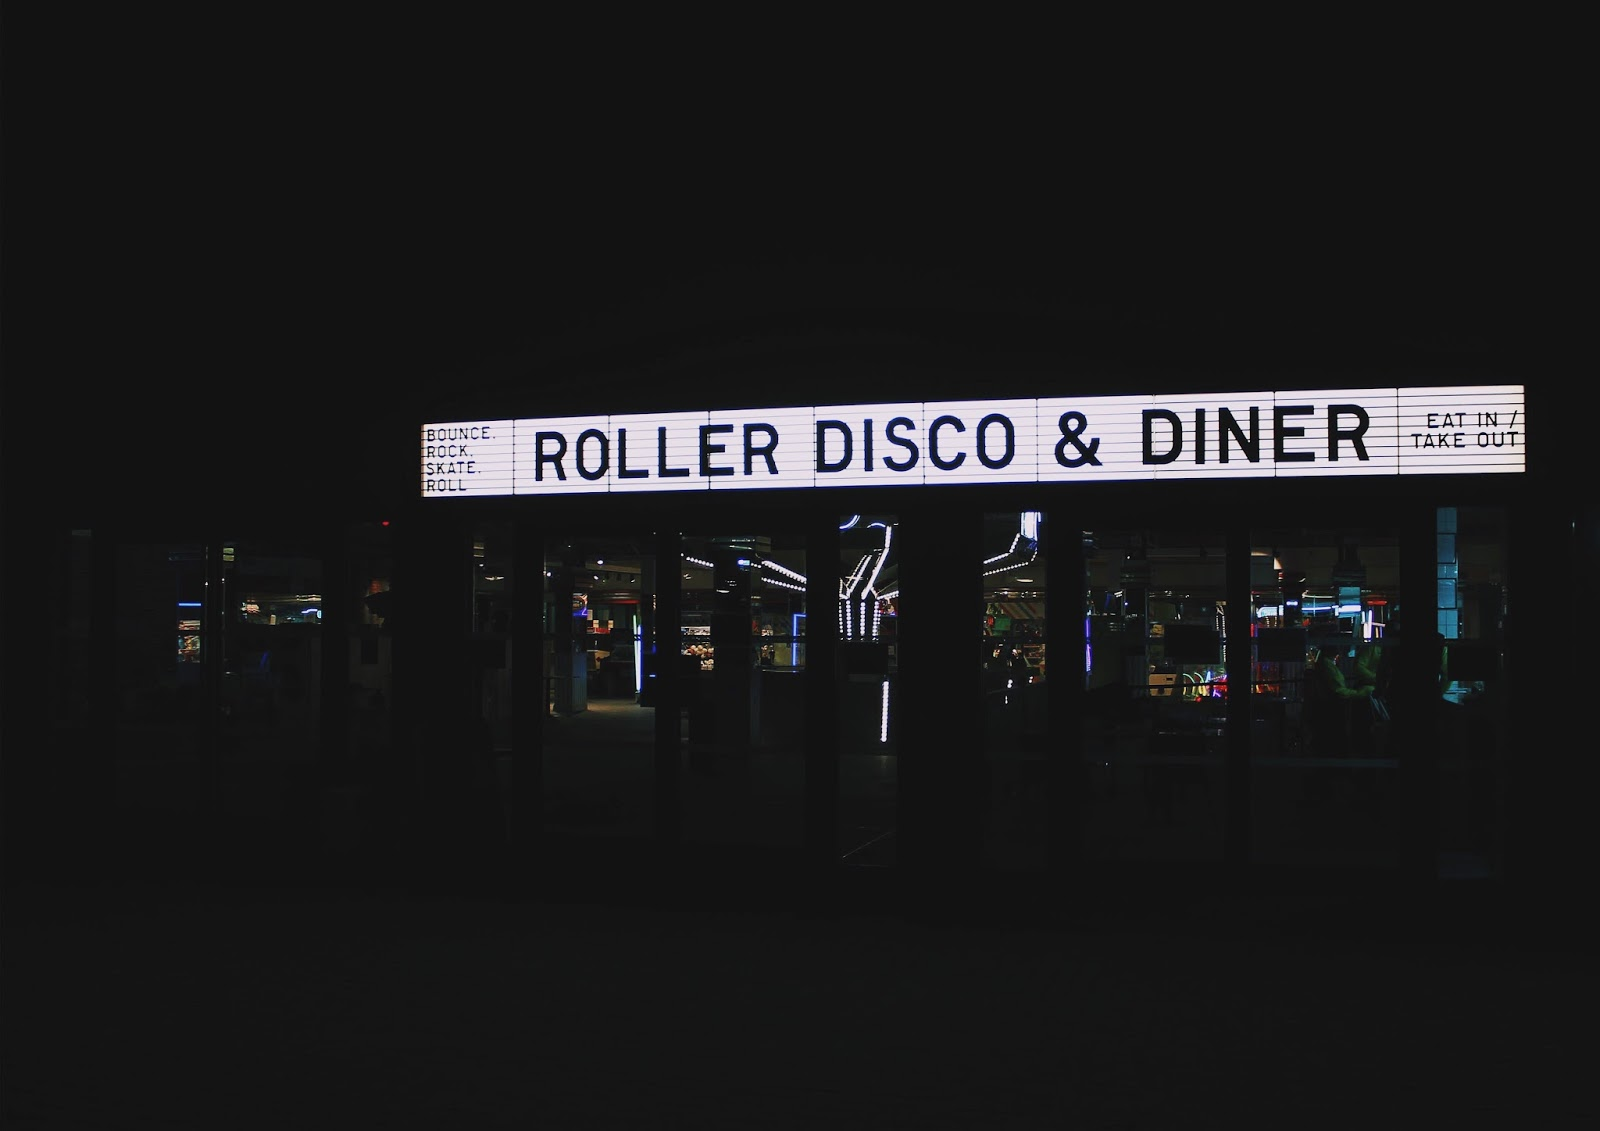 blog post about dreamland margates new roller disco and diner restaurant